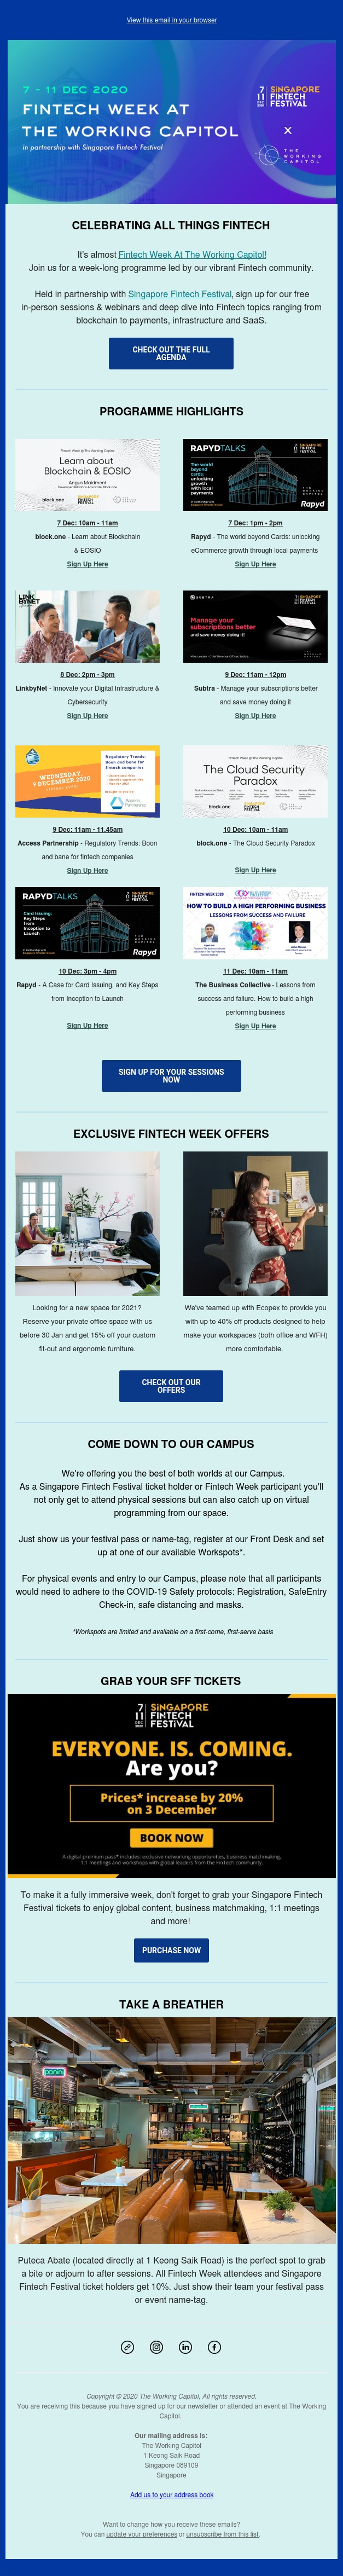 Check Out Our Fintech Week Agenda!